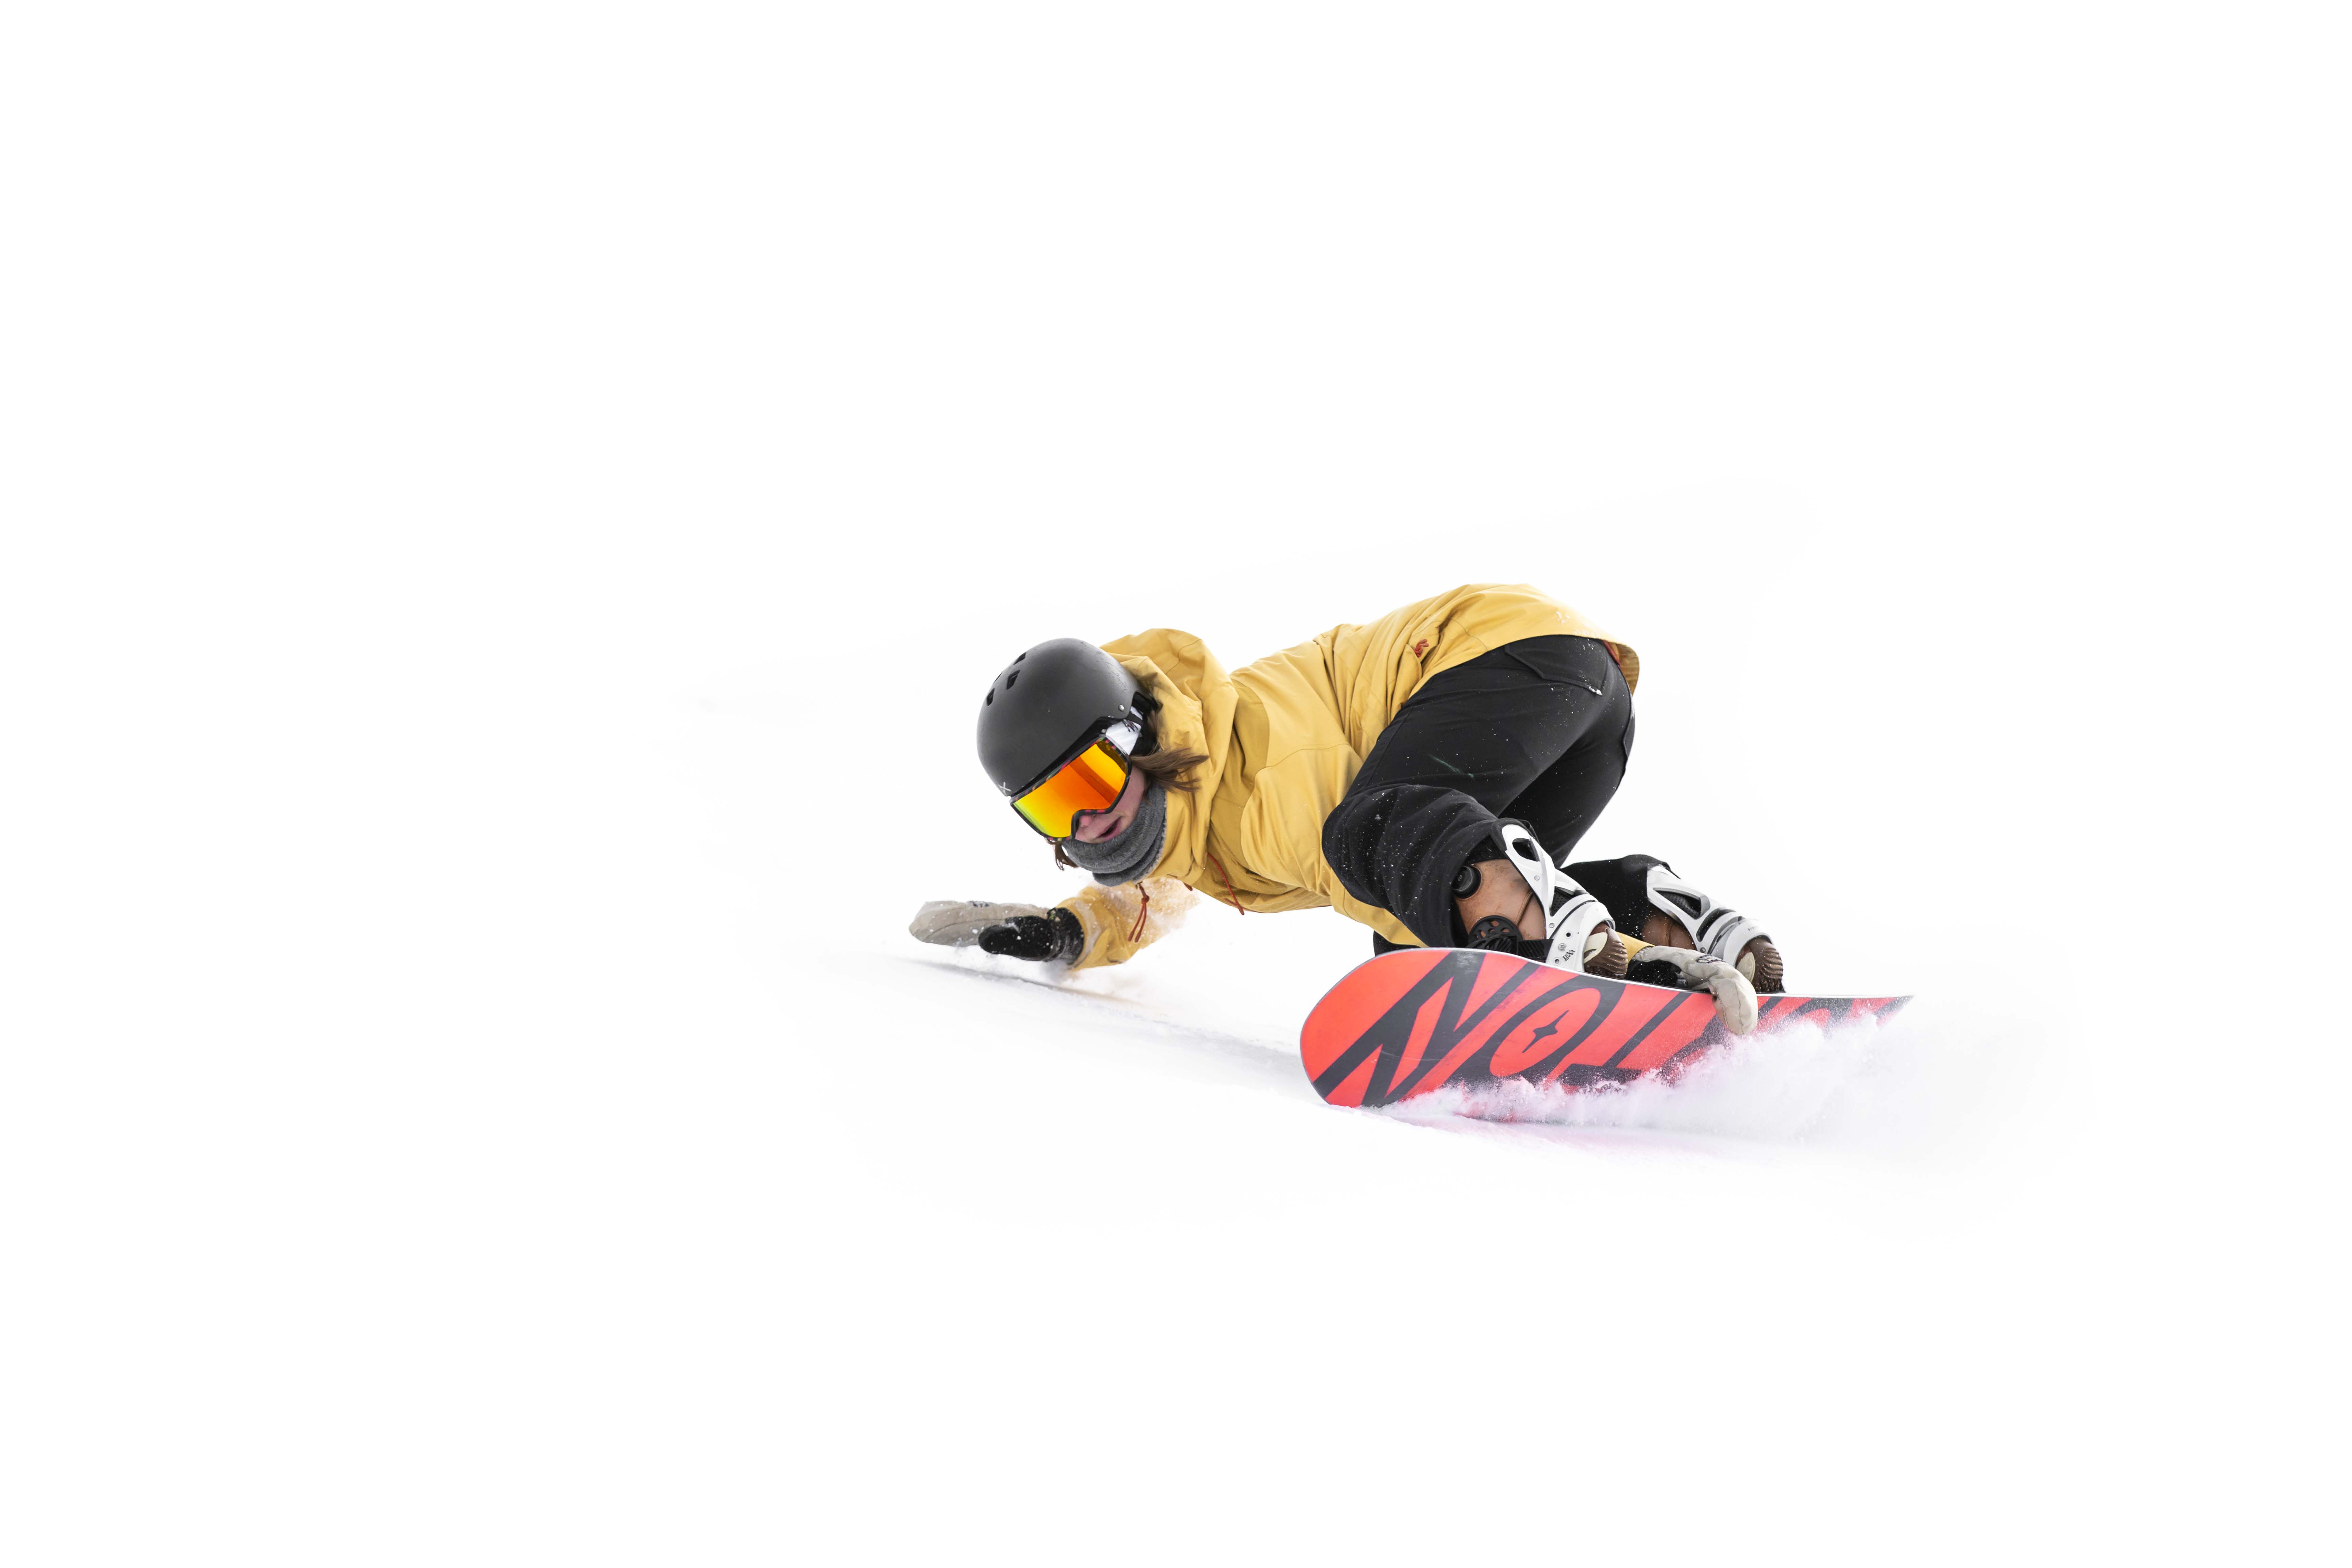 snowboarder carving at cardrona alpine resort